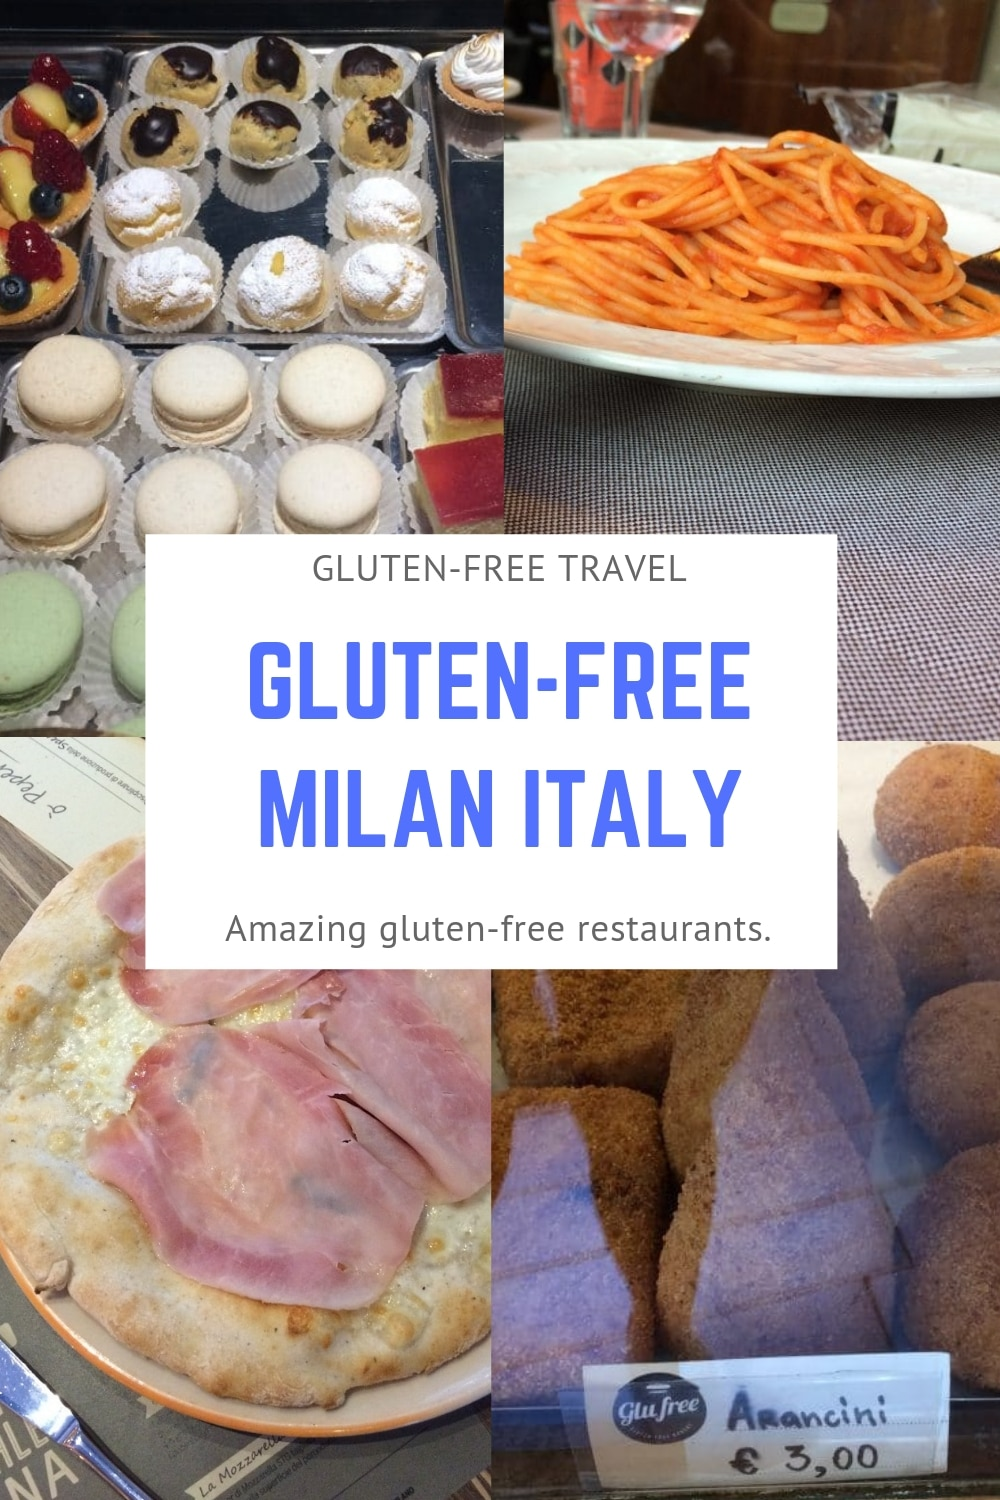 Gluten-Free Milan! My family of four visited Milan, Italy and we had a fabulous time and ate incredible gluten-free food at some of the best gluten-free Milan restaurants.